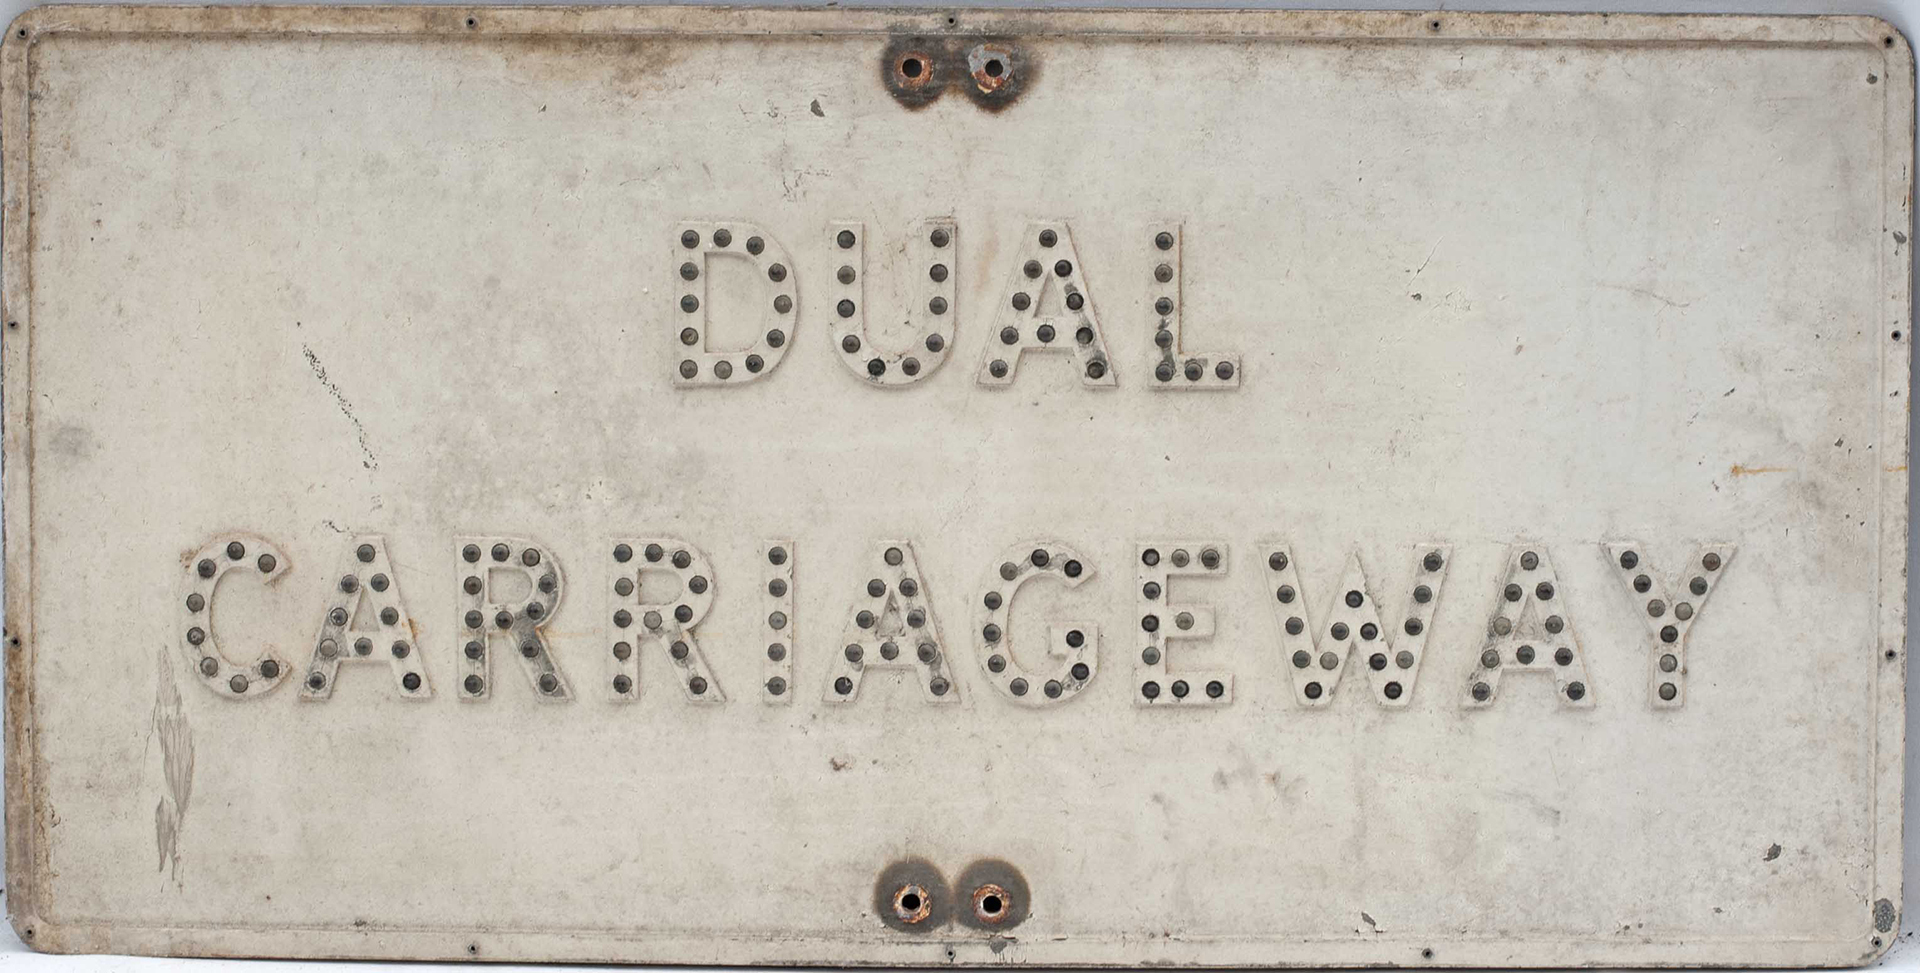 Road sign DUAL CARRIAGEWAY measuring 36in x 18in. Cast aluminium with steel backing plate and